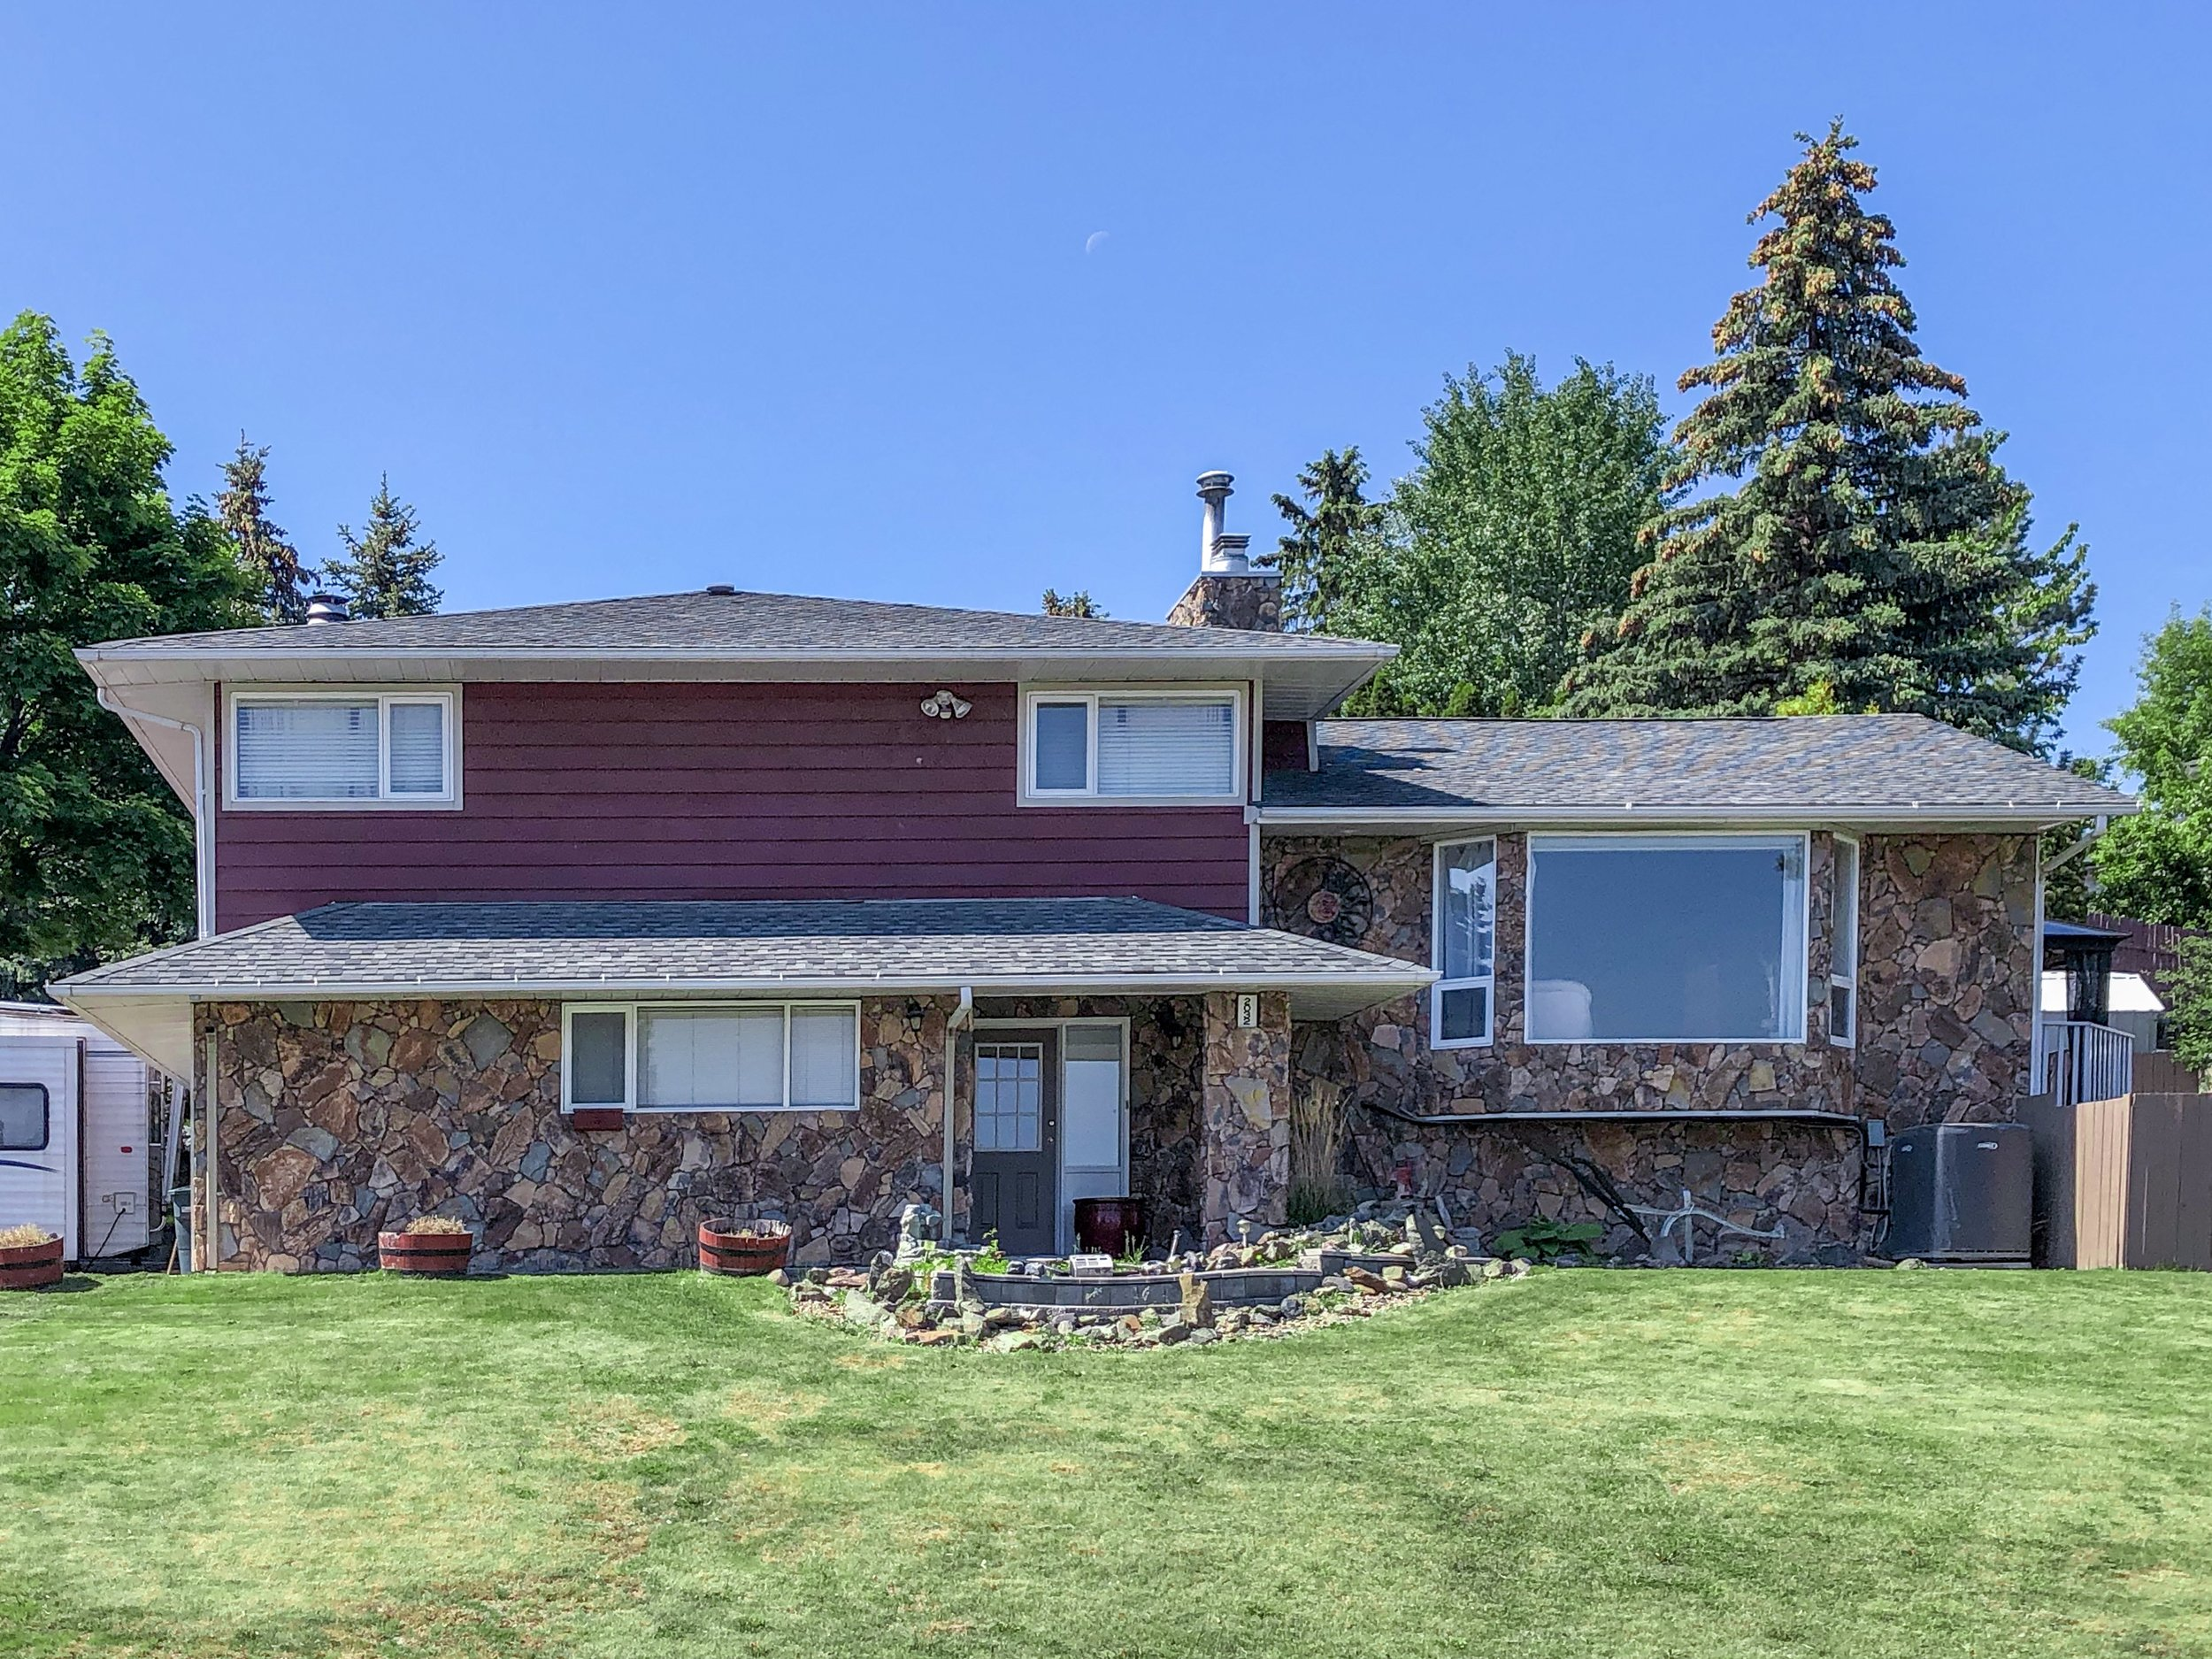 2032-sifton-avenue-kamloops-bc-aberdeen-for-sale-exterior-front.jpg